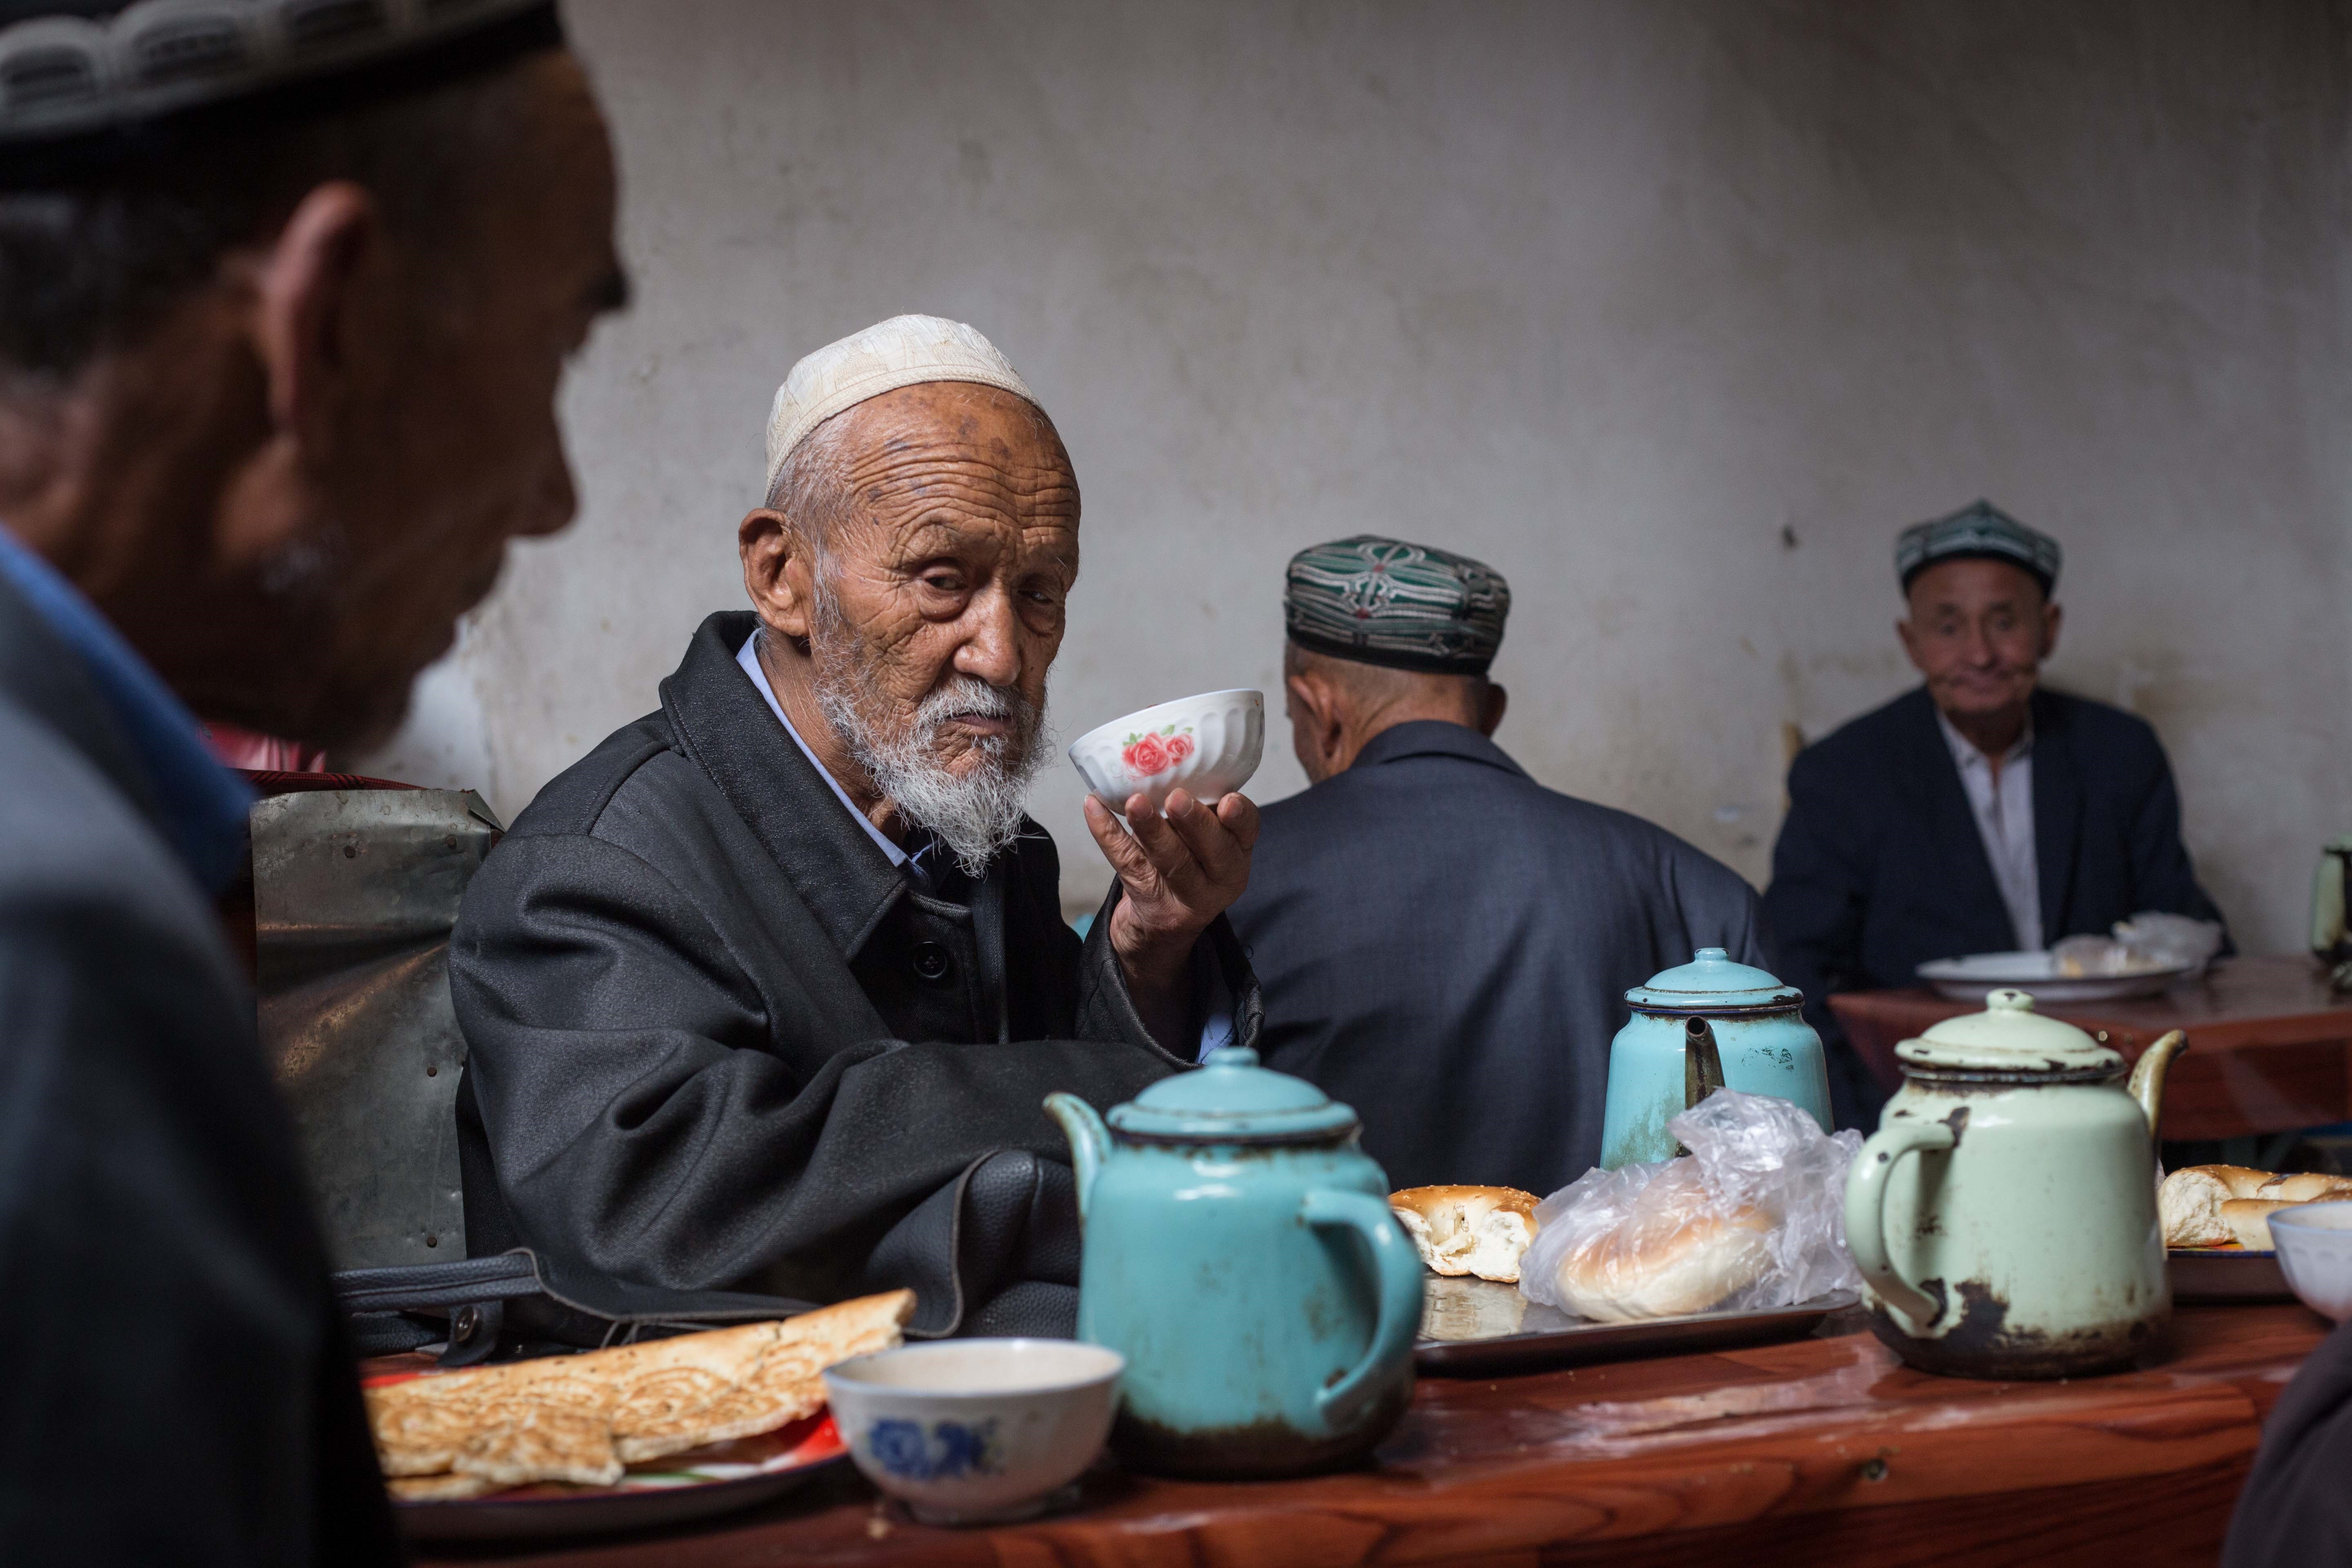 A Uighur man drinks tea at a local tea shop in Kashgar City, in China's Xinjiang Uyghur Autonomous Region on July 06, 2017.